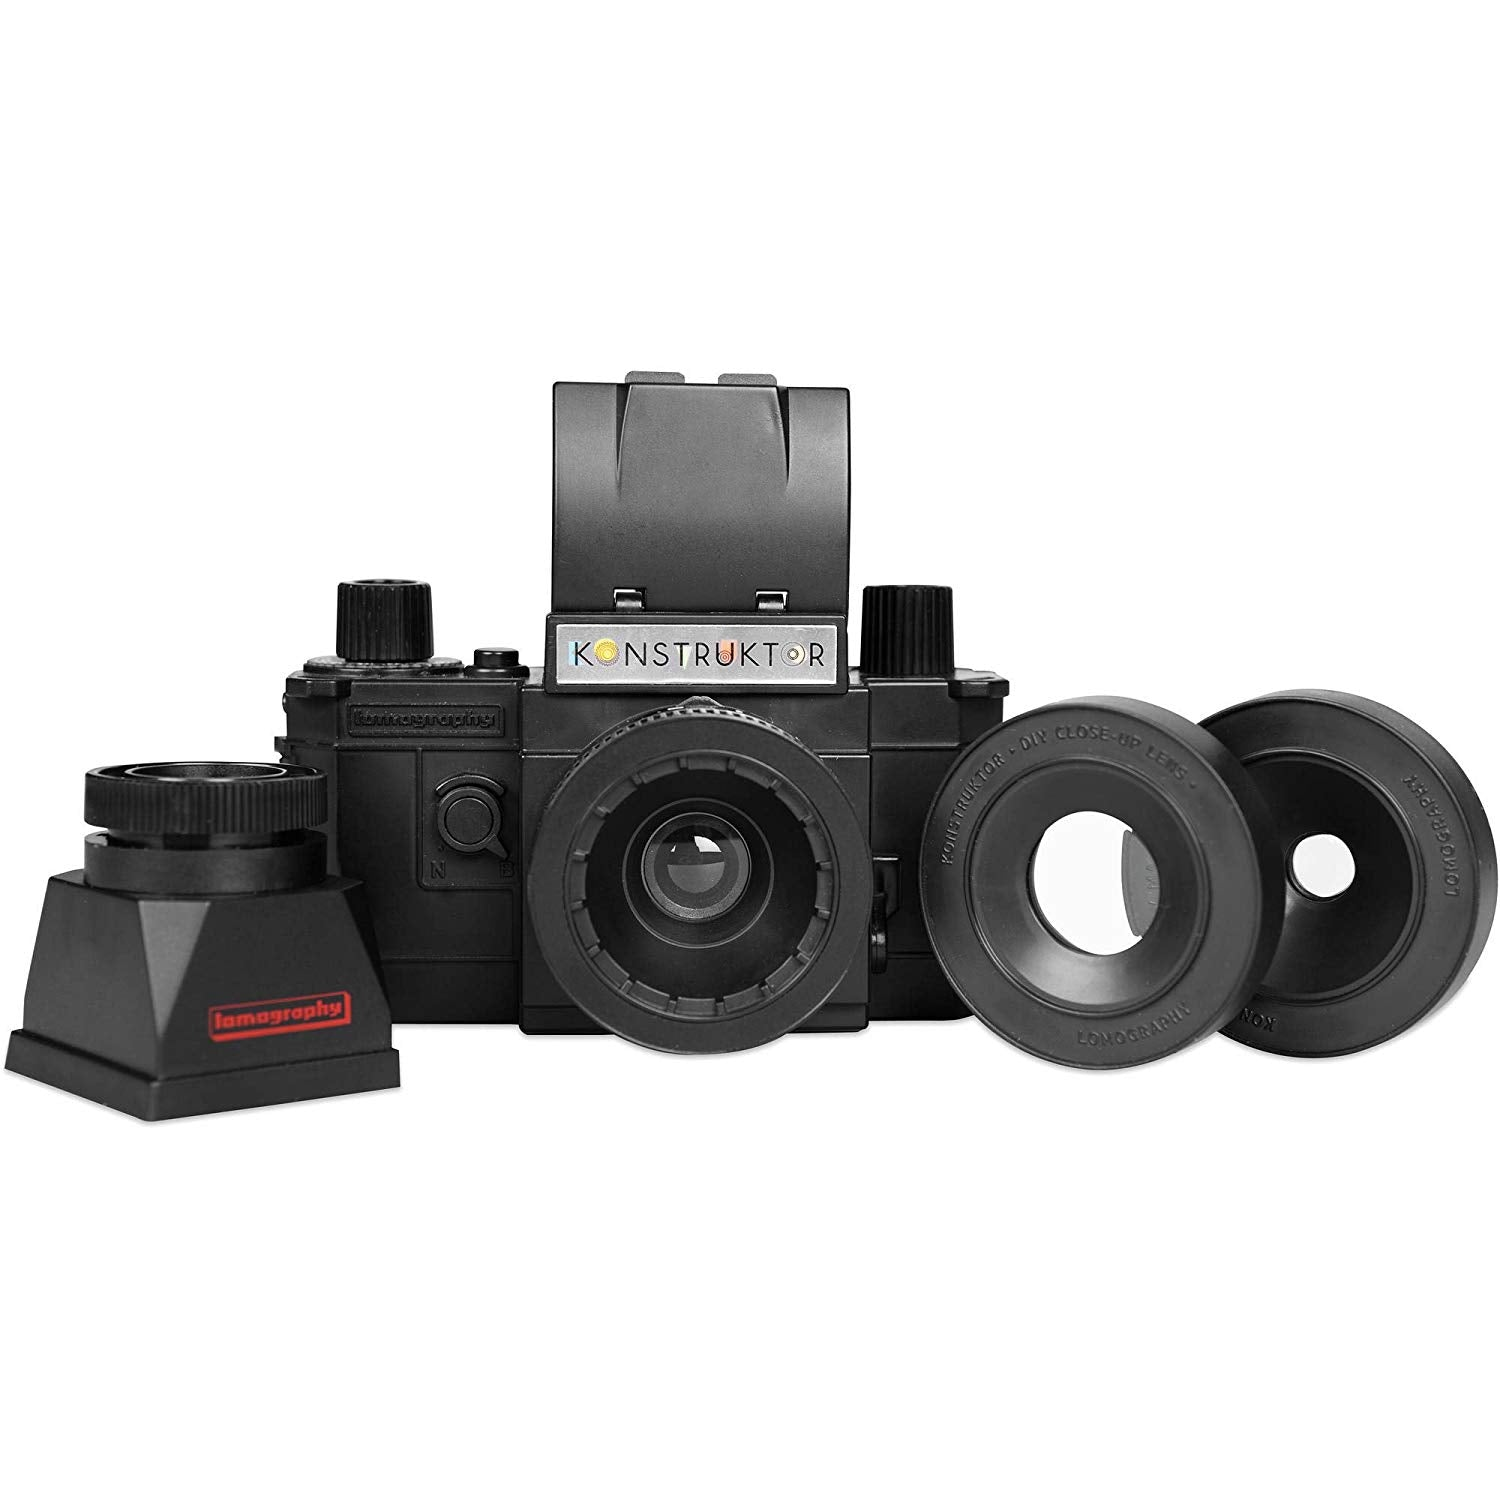 Lomography Konstruktor Super Kit